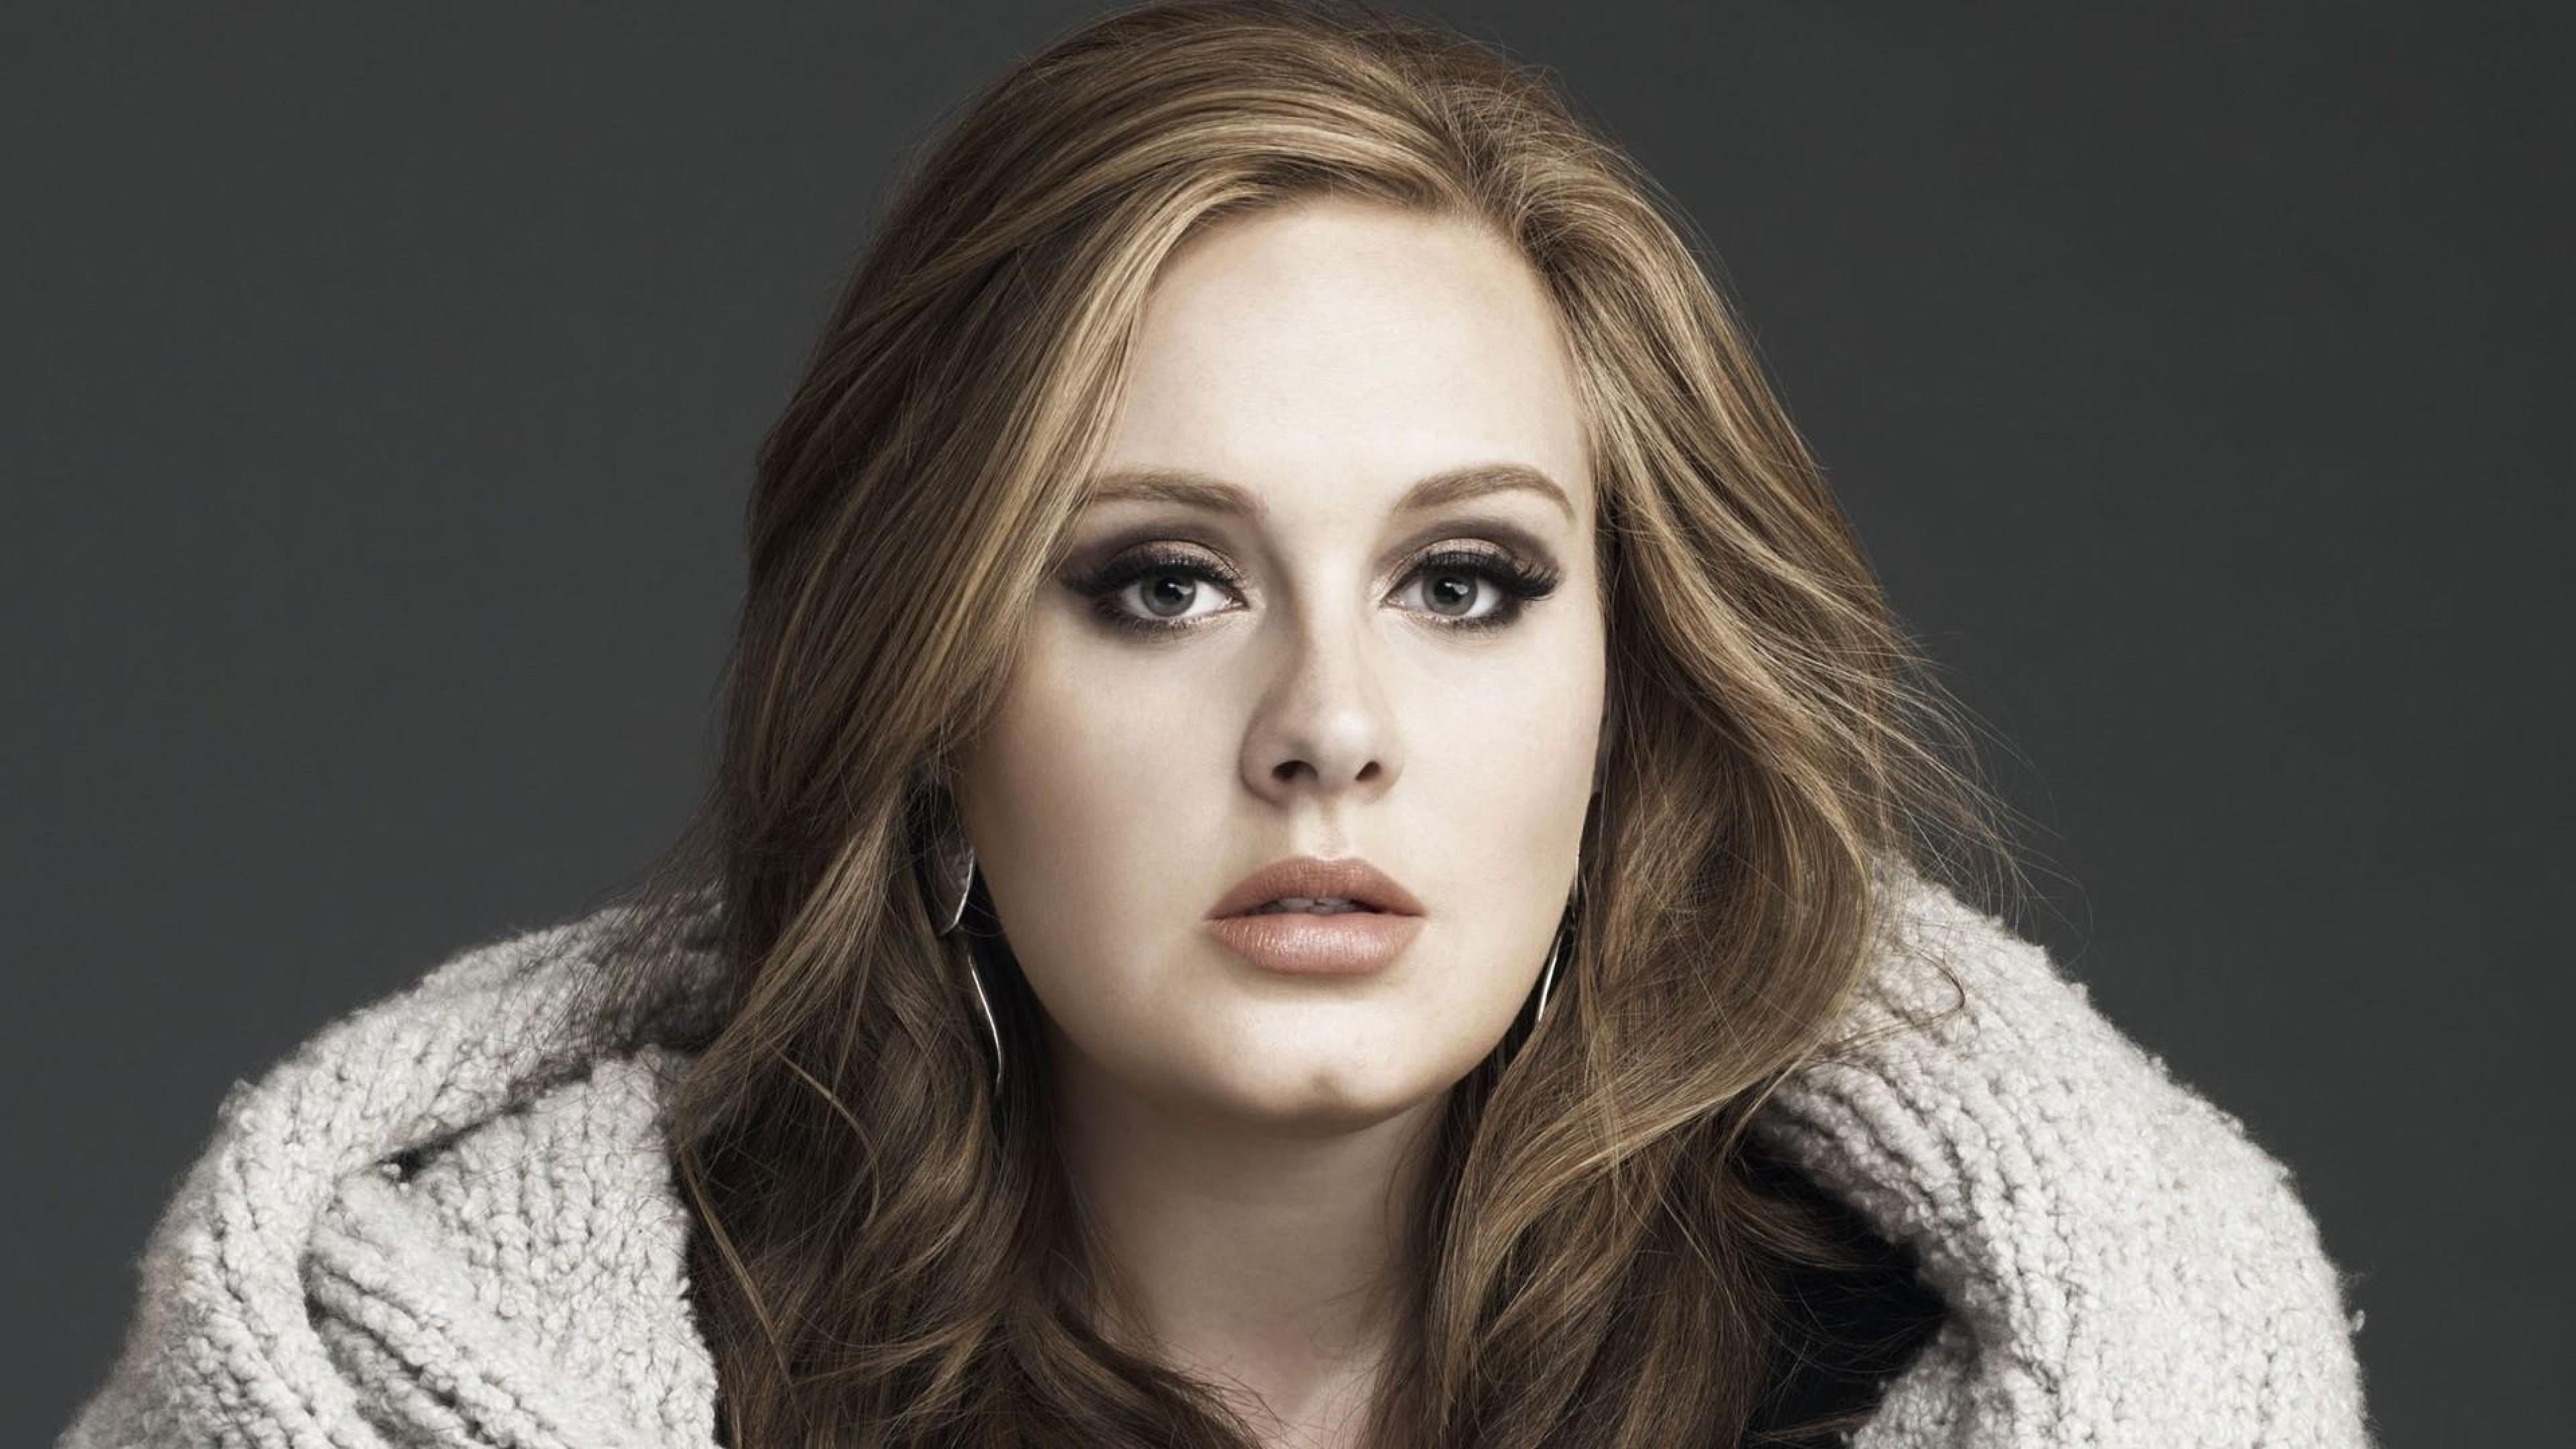 Adele-ultra-high-definition-backgrounds